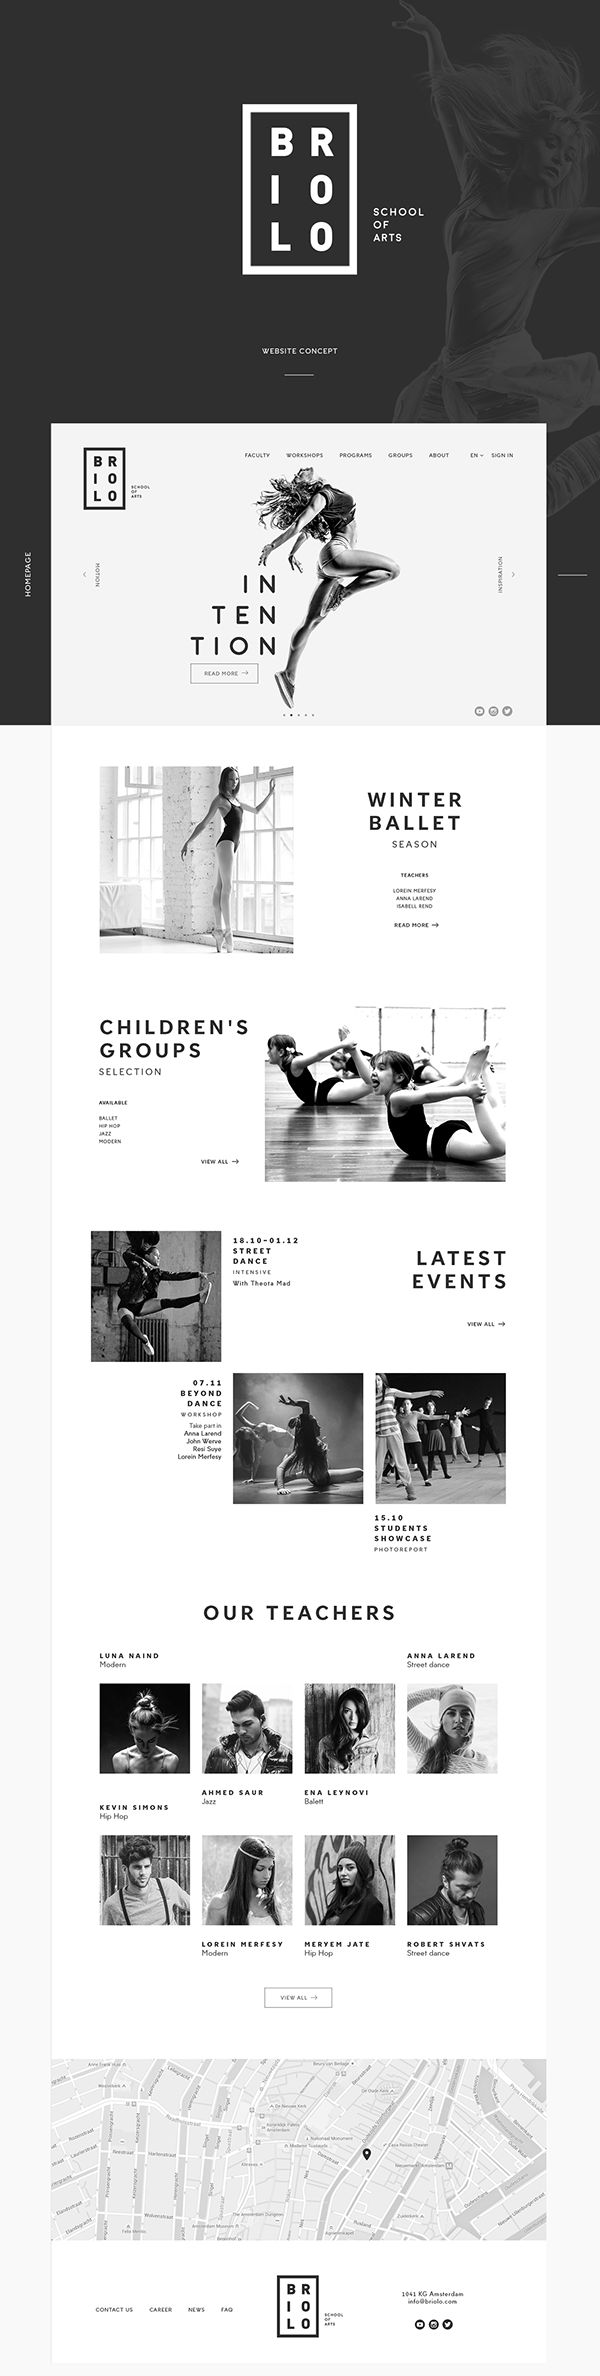 Link: https://www.behance.net/gallery/30593193/Briolo-Website-concept. Concept art from Briolo web site that depicts the benefits of a dance academy in Amsterdam. All of the shots are in monochromatic so that the dancers can have their performances and stances better highlighted by the lighting. The text is nice and bold with short sentences to not distract from the photos.